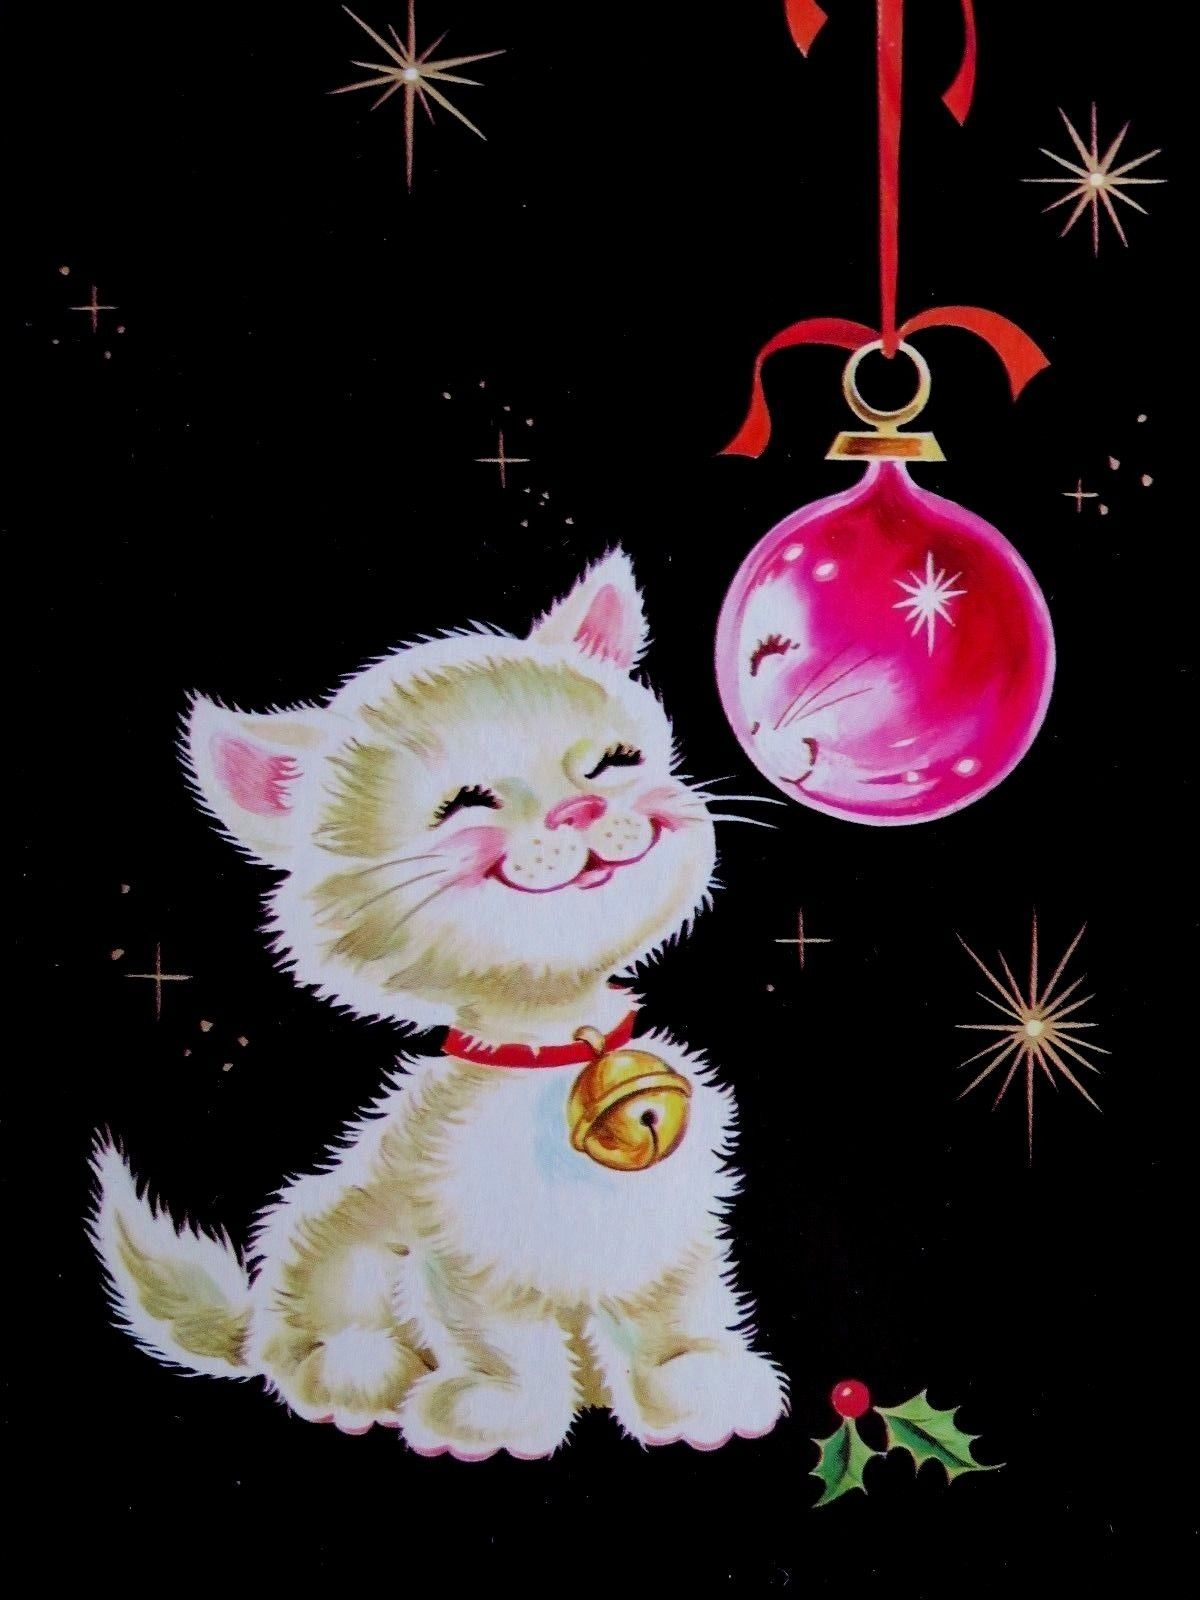 1960s vintage hallmark christmas greeting card for fine son vintage christmas card 1960s adorable kitten looks reflection in pink ornament 2000 vintage m4hsunfo